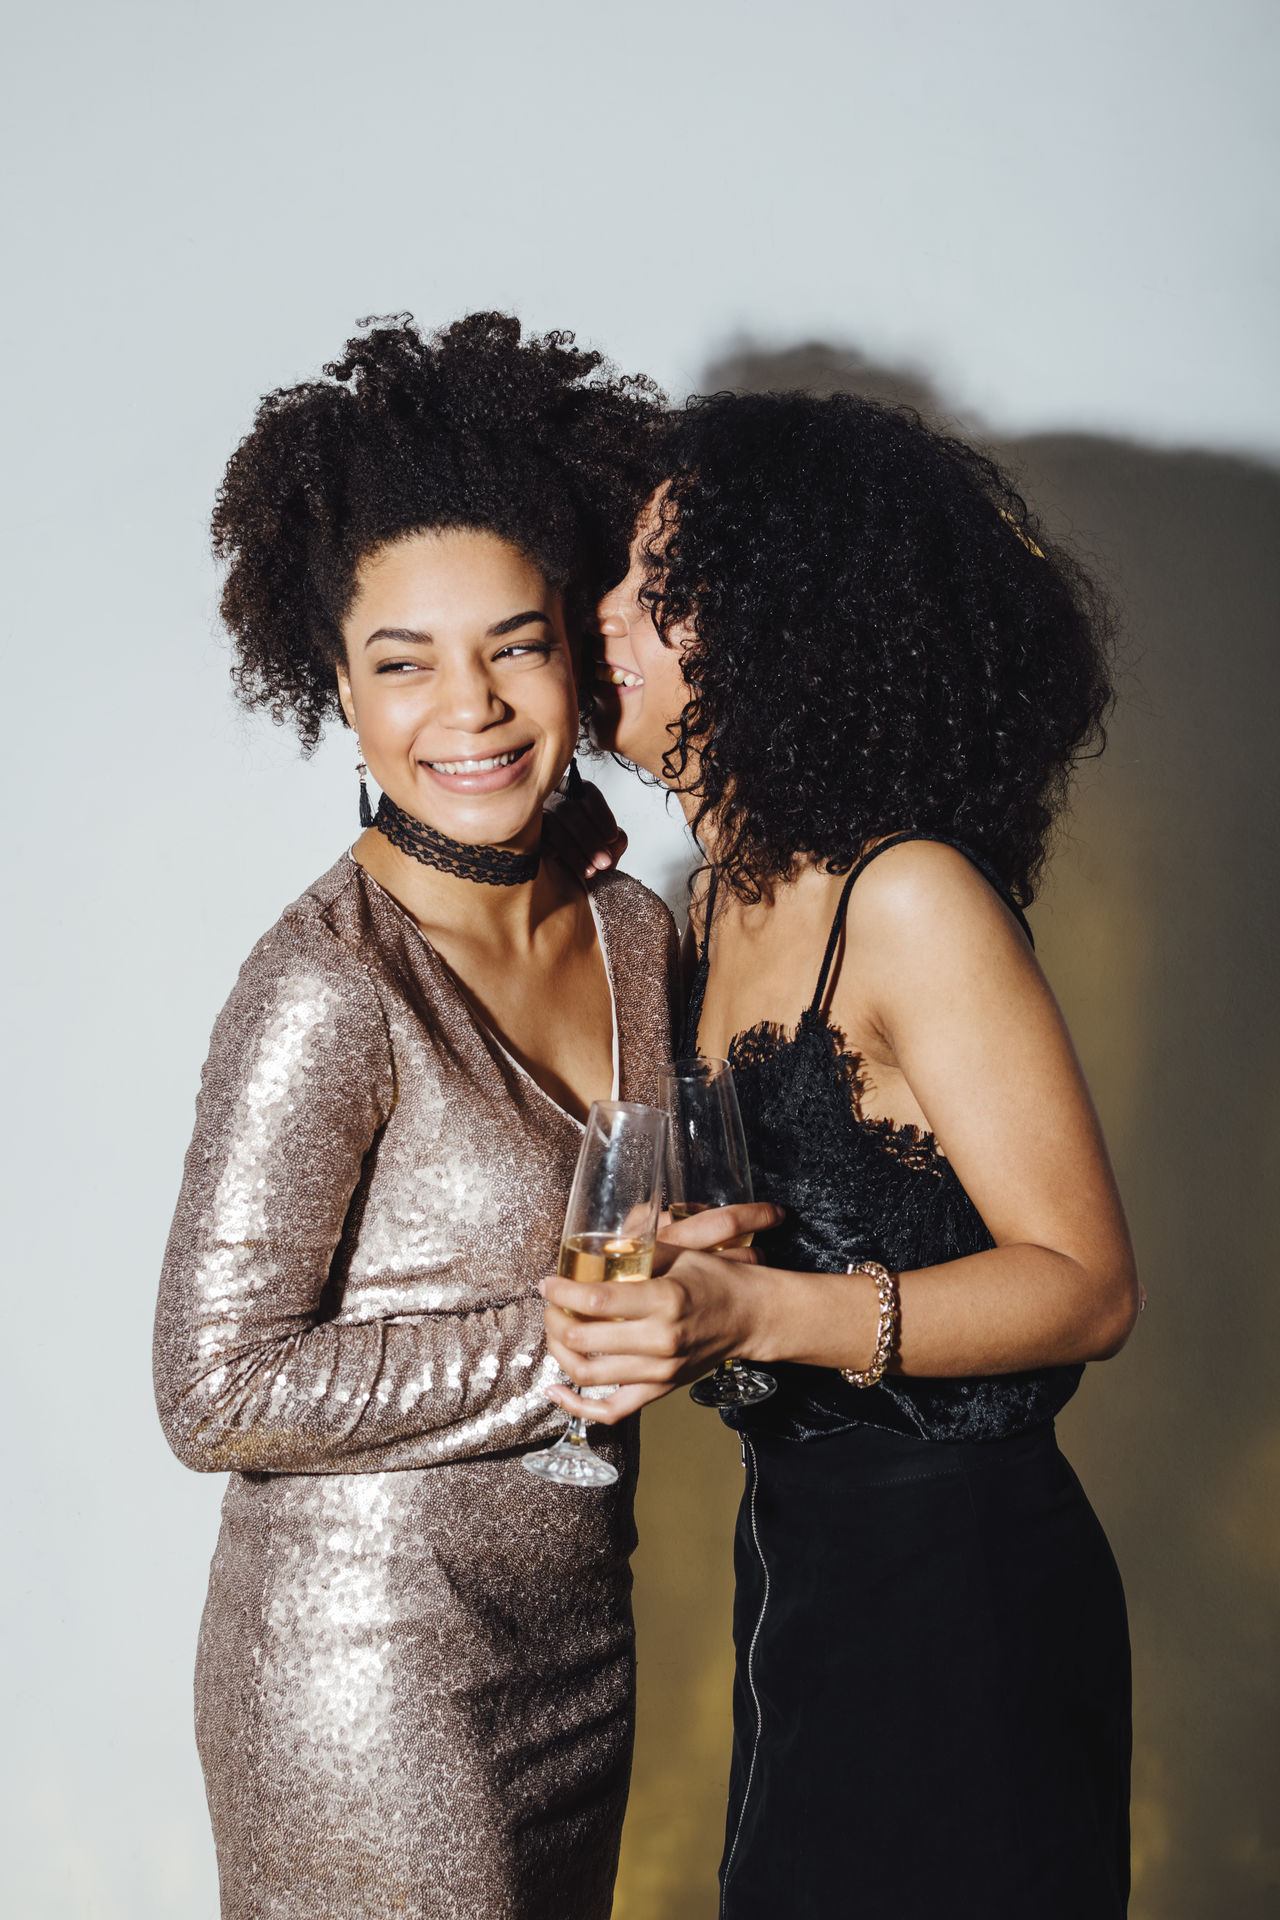 Adult Adults Only Alcohol Beautiful Woman Black Hair Champagne Cheerful Curly Hair Friends Friendship Happiness Happiness Indoors  Indoors  Only Women Party - Social Event People Smiling Together Togetherness Two People Wineglass Women Young Adult